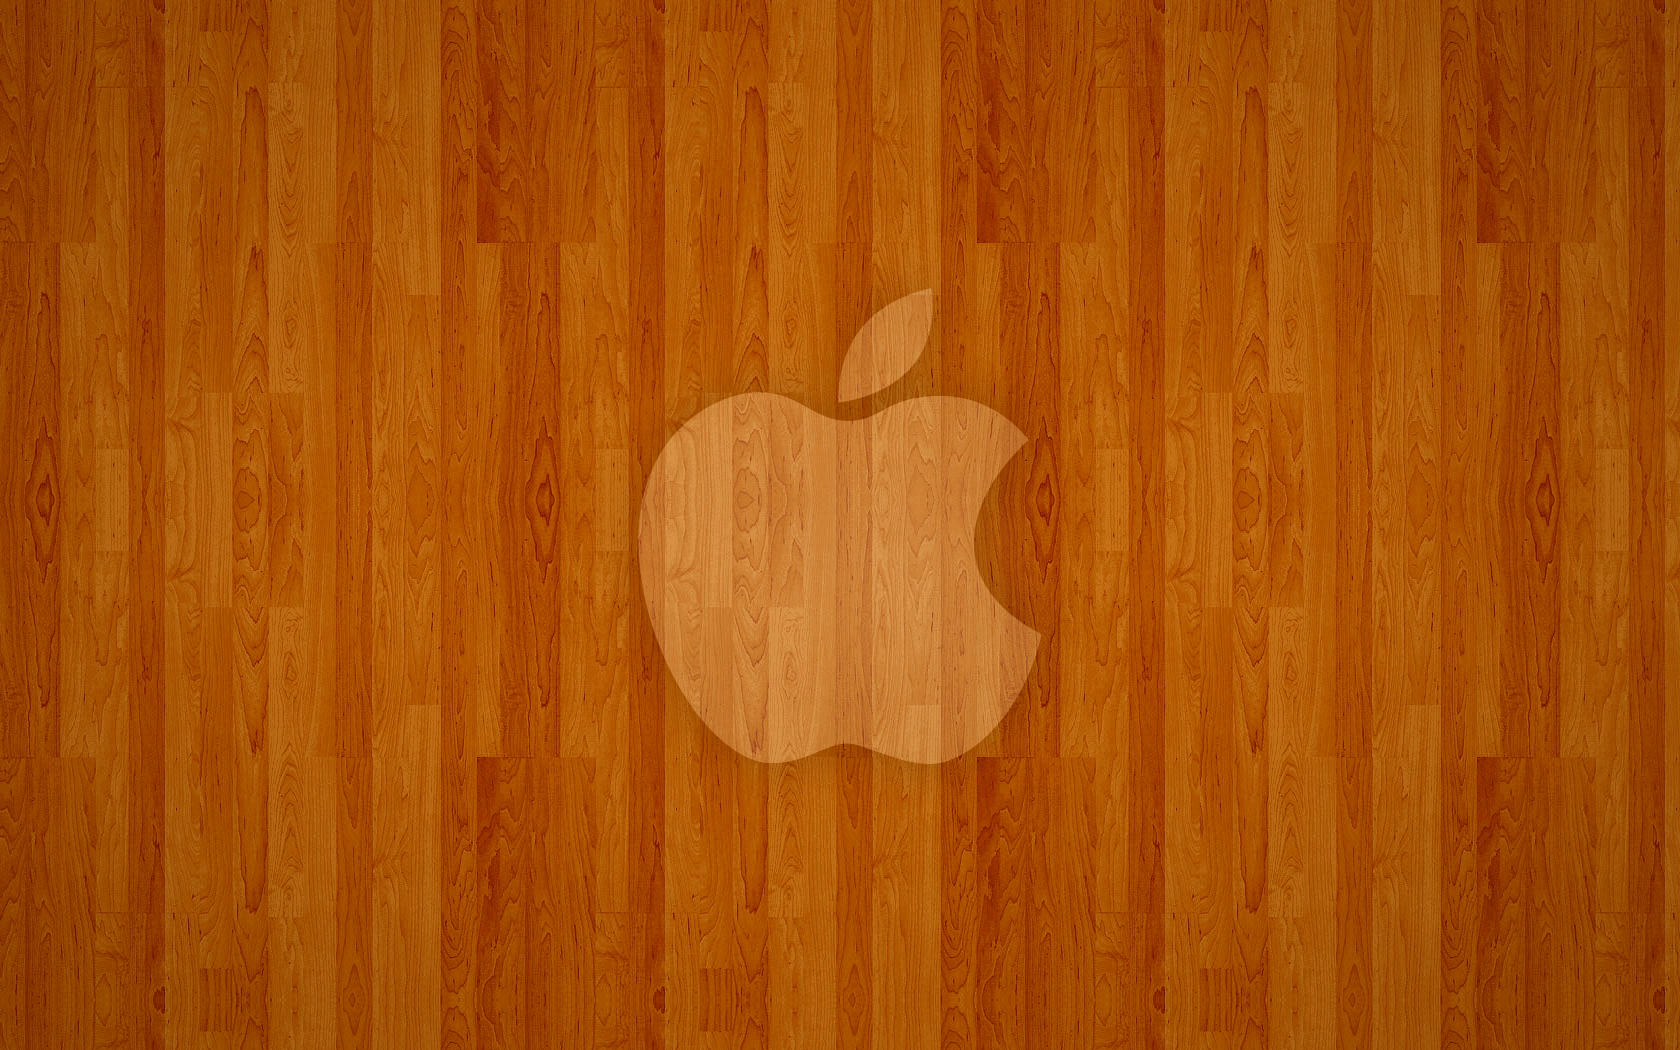 wooden apple v2jayxdesk on deviantart